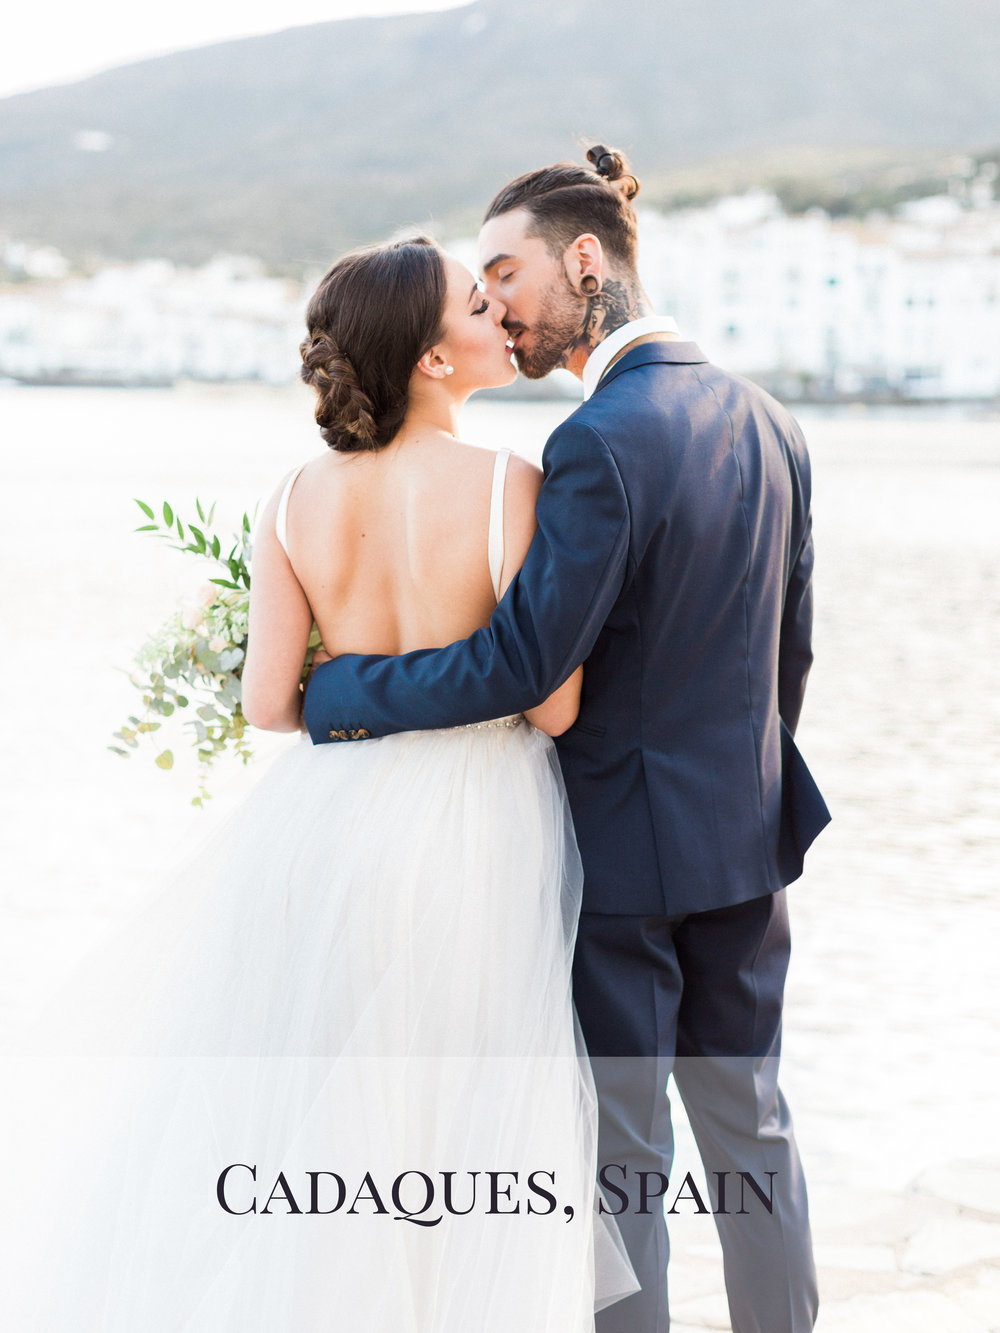 Peaches & Twine Photography Fine Art Film Wedding Destination Photographers Cadaques Spain Intimate Elopement Edwar Tiger Coastal Europe Wedding Photographers